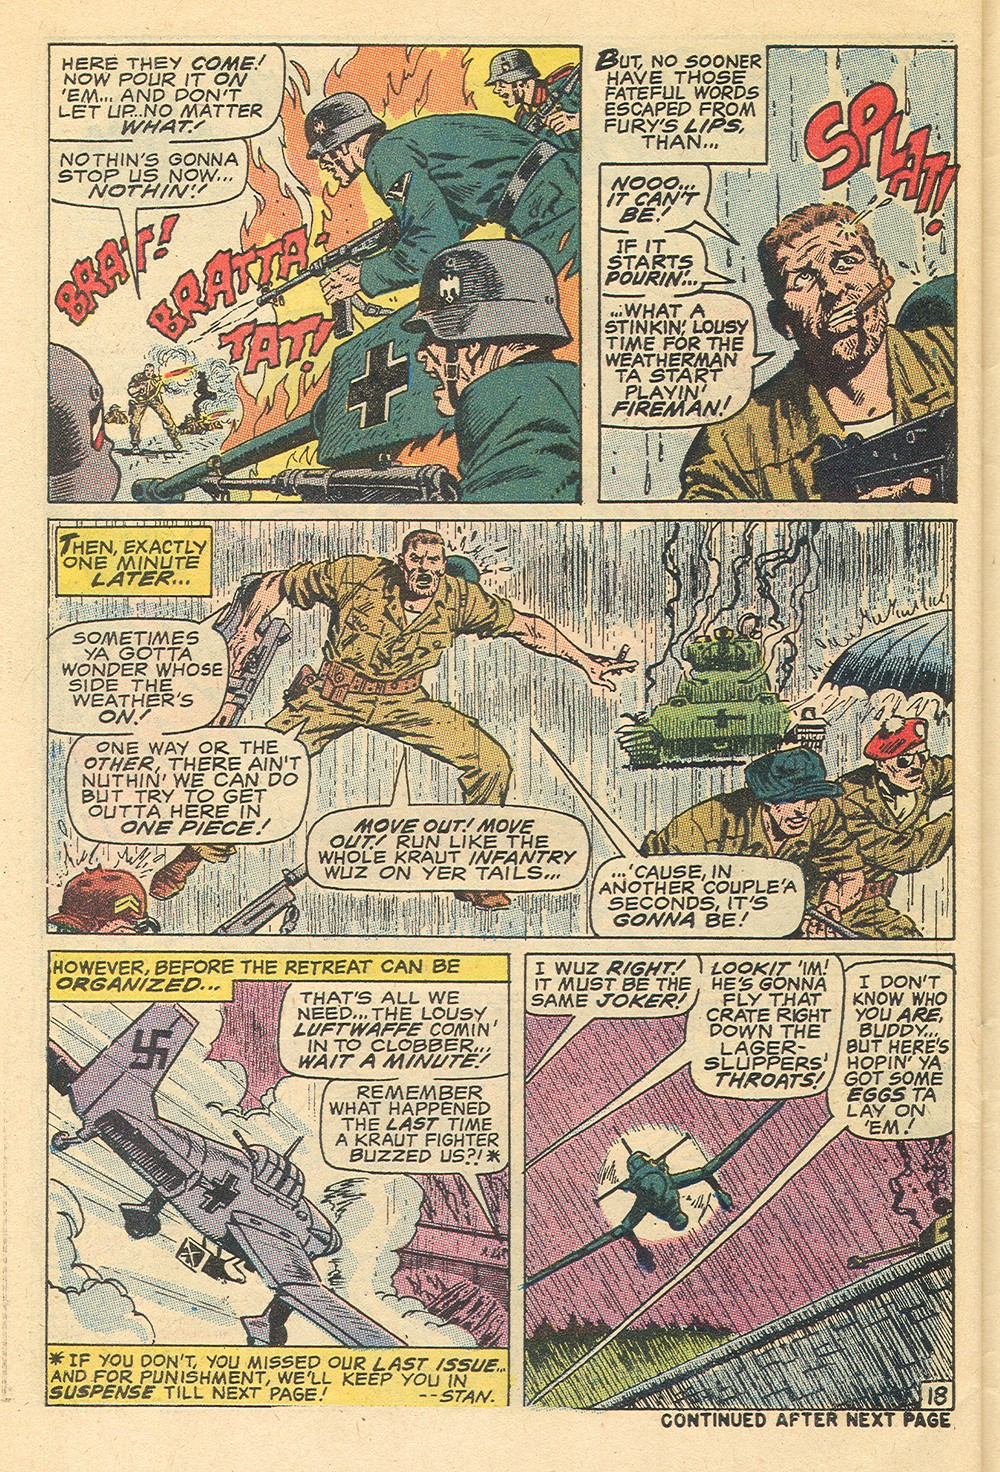 Read online Sgt. Fury comic -  Issue #71 - 30